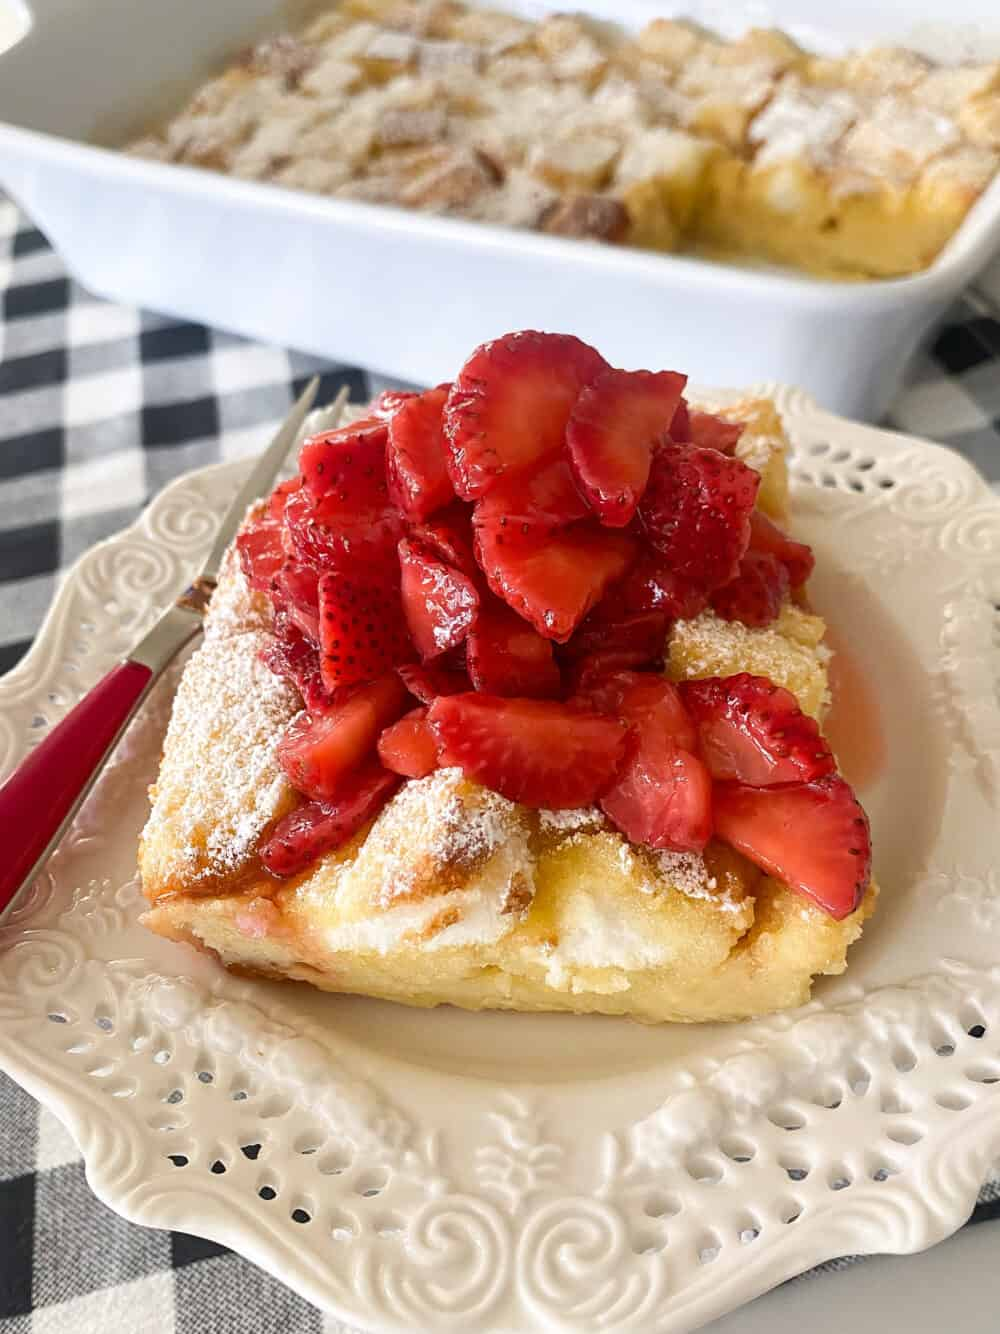 baked strawberry shortcake with strawberries